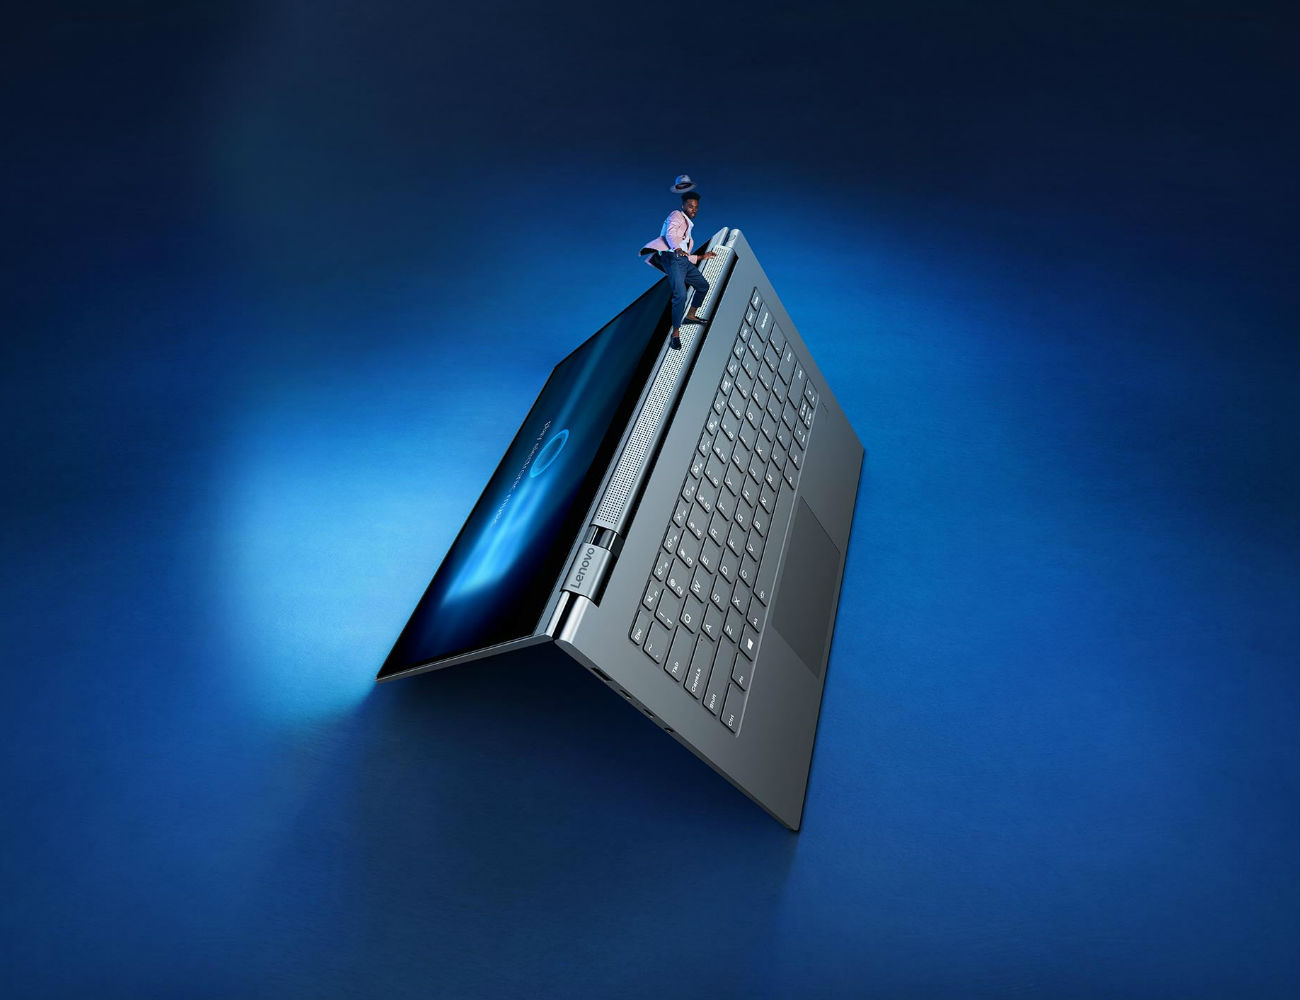 Lenovo Yoga C930 Laptop